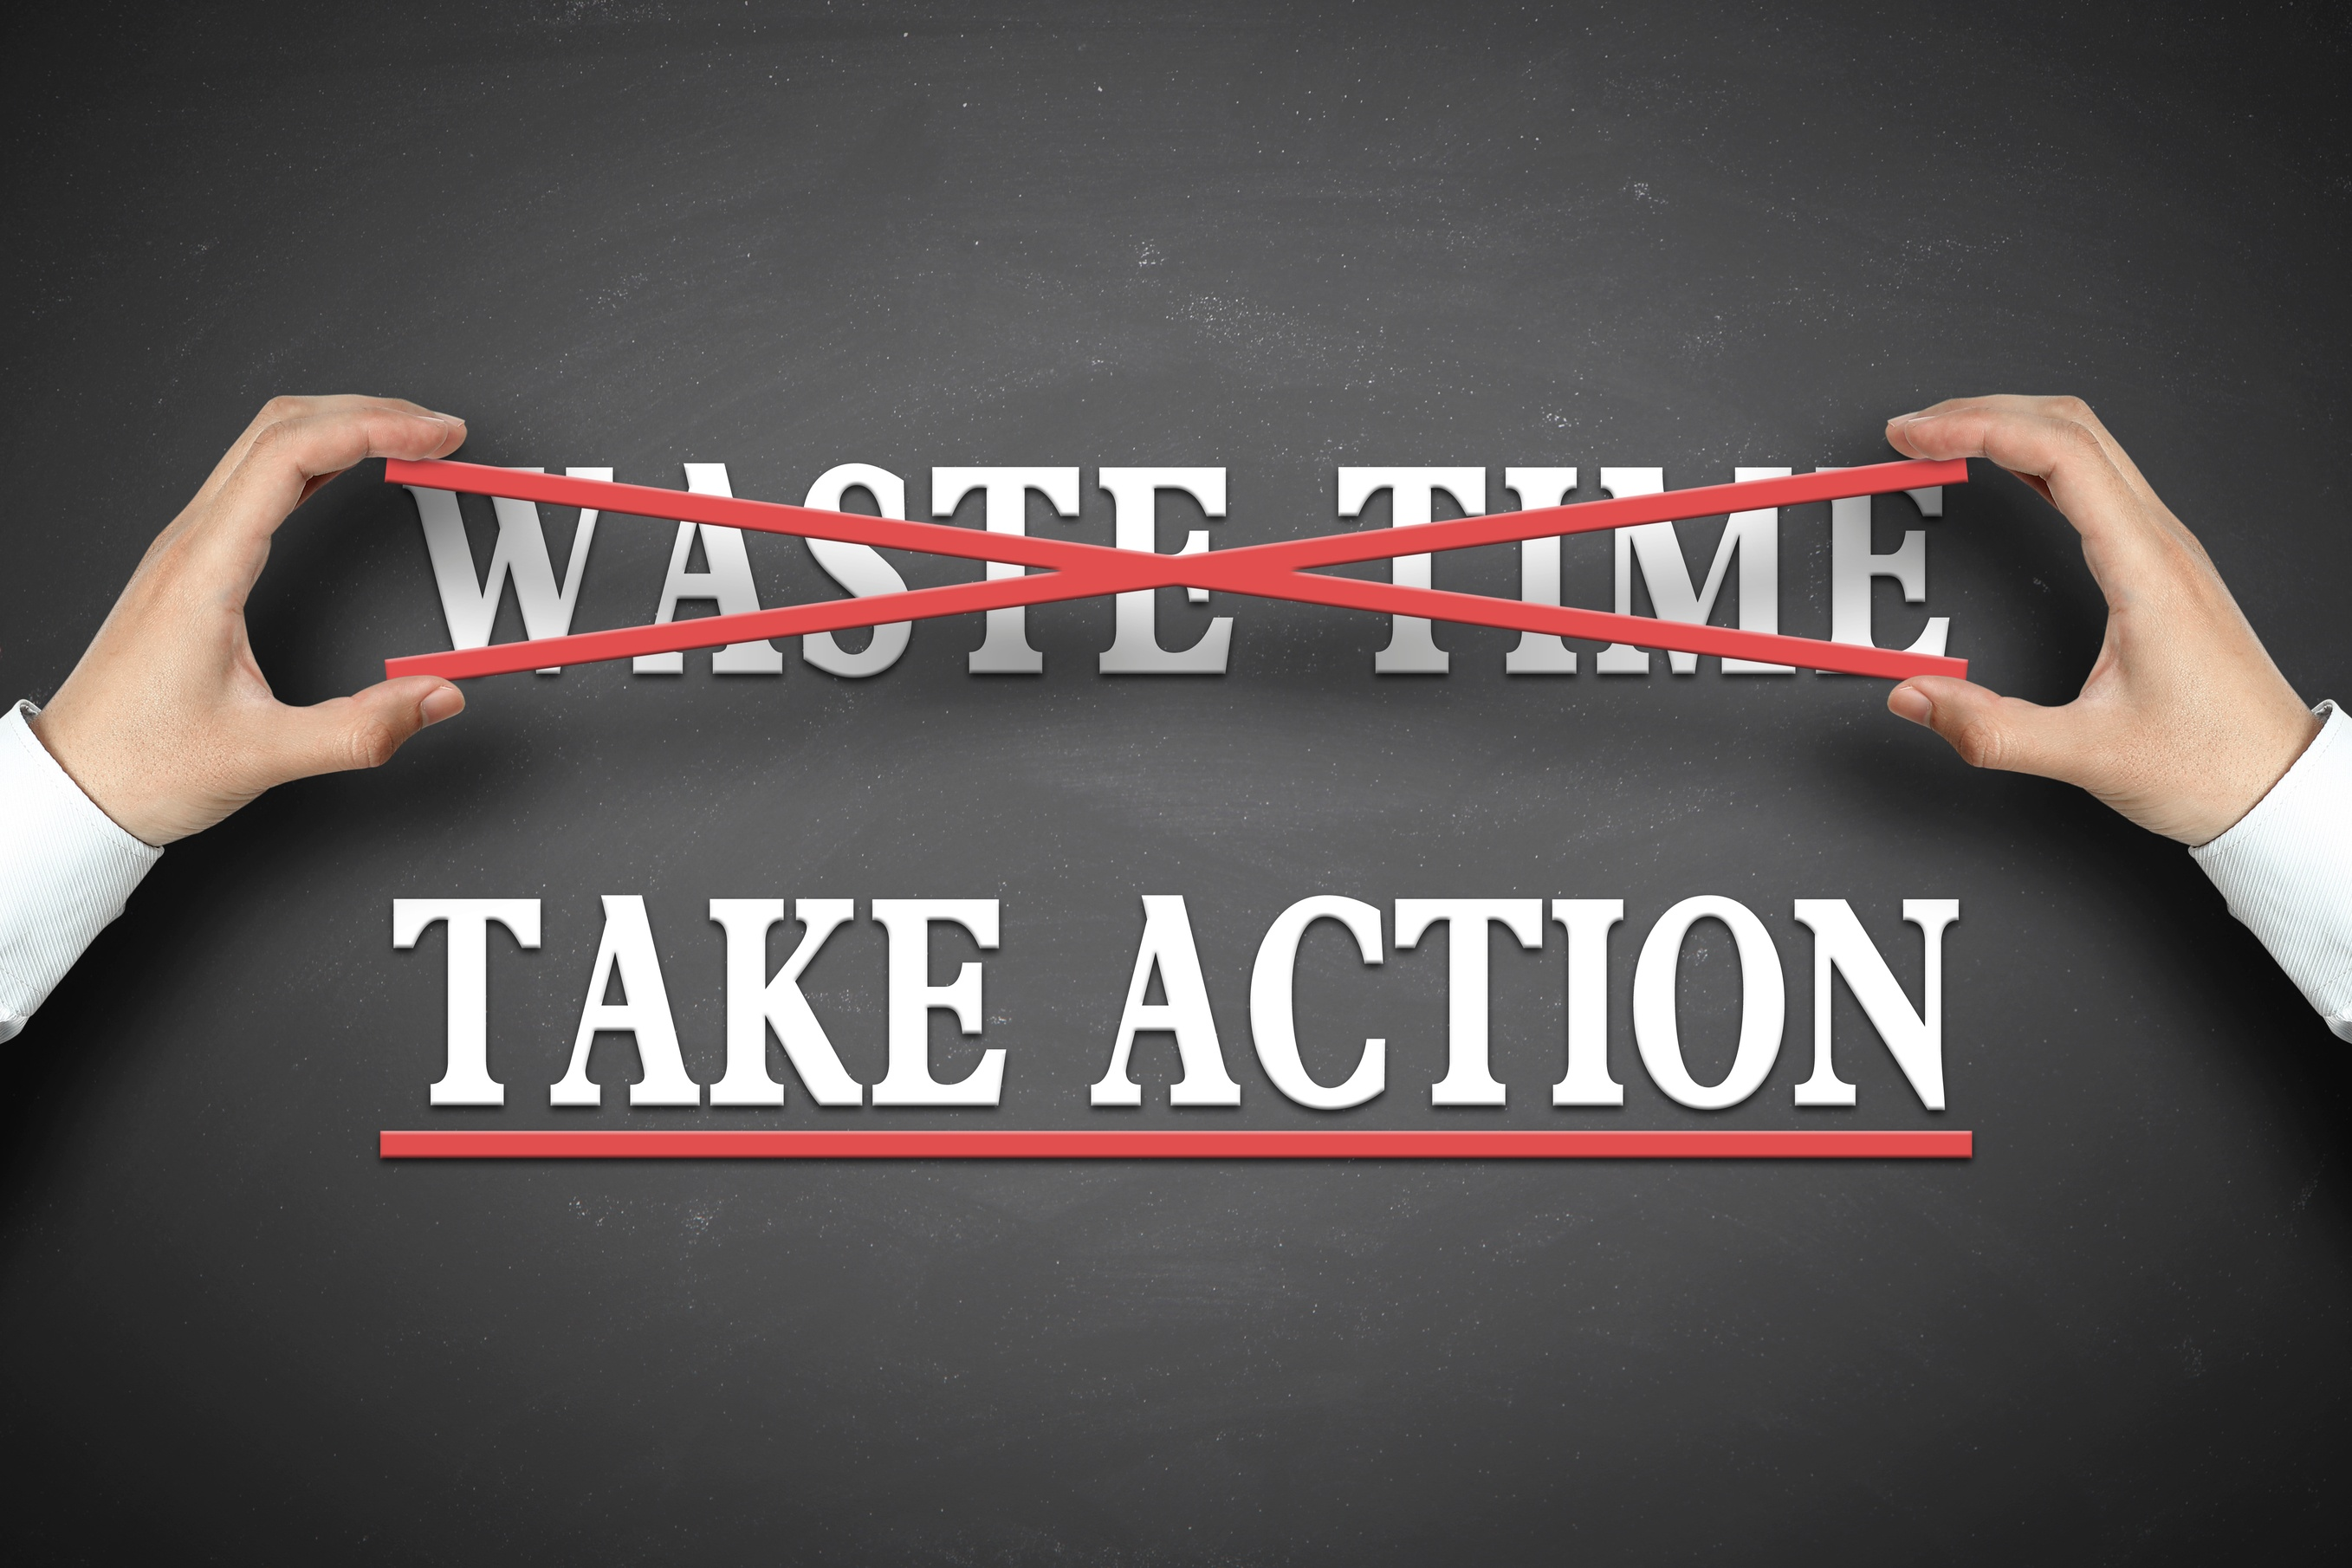 Don't waste time, take action